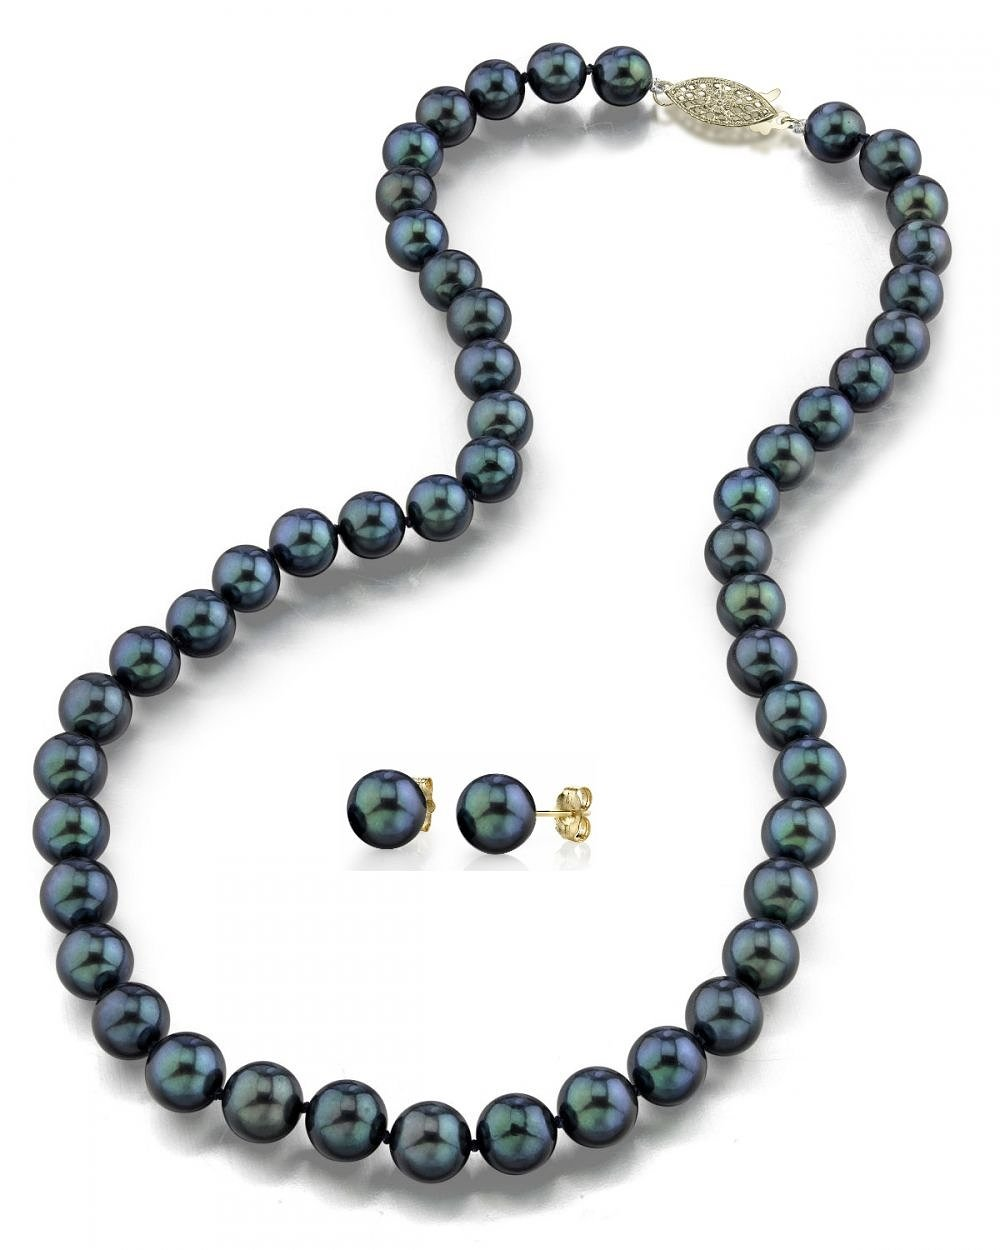 14K Gold 6.5-7.0mm Black Akoya Cultured Pearl Necklace & Earrings Set, 18'' Length - AA+ Quality